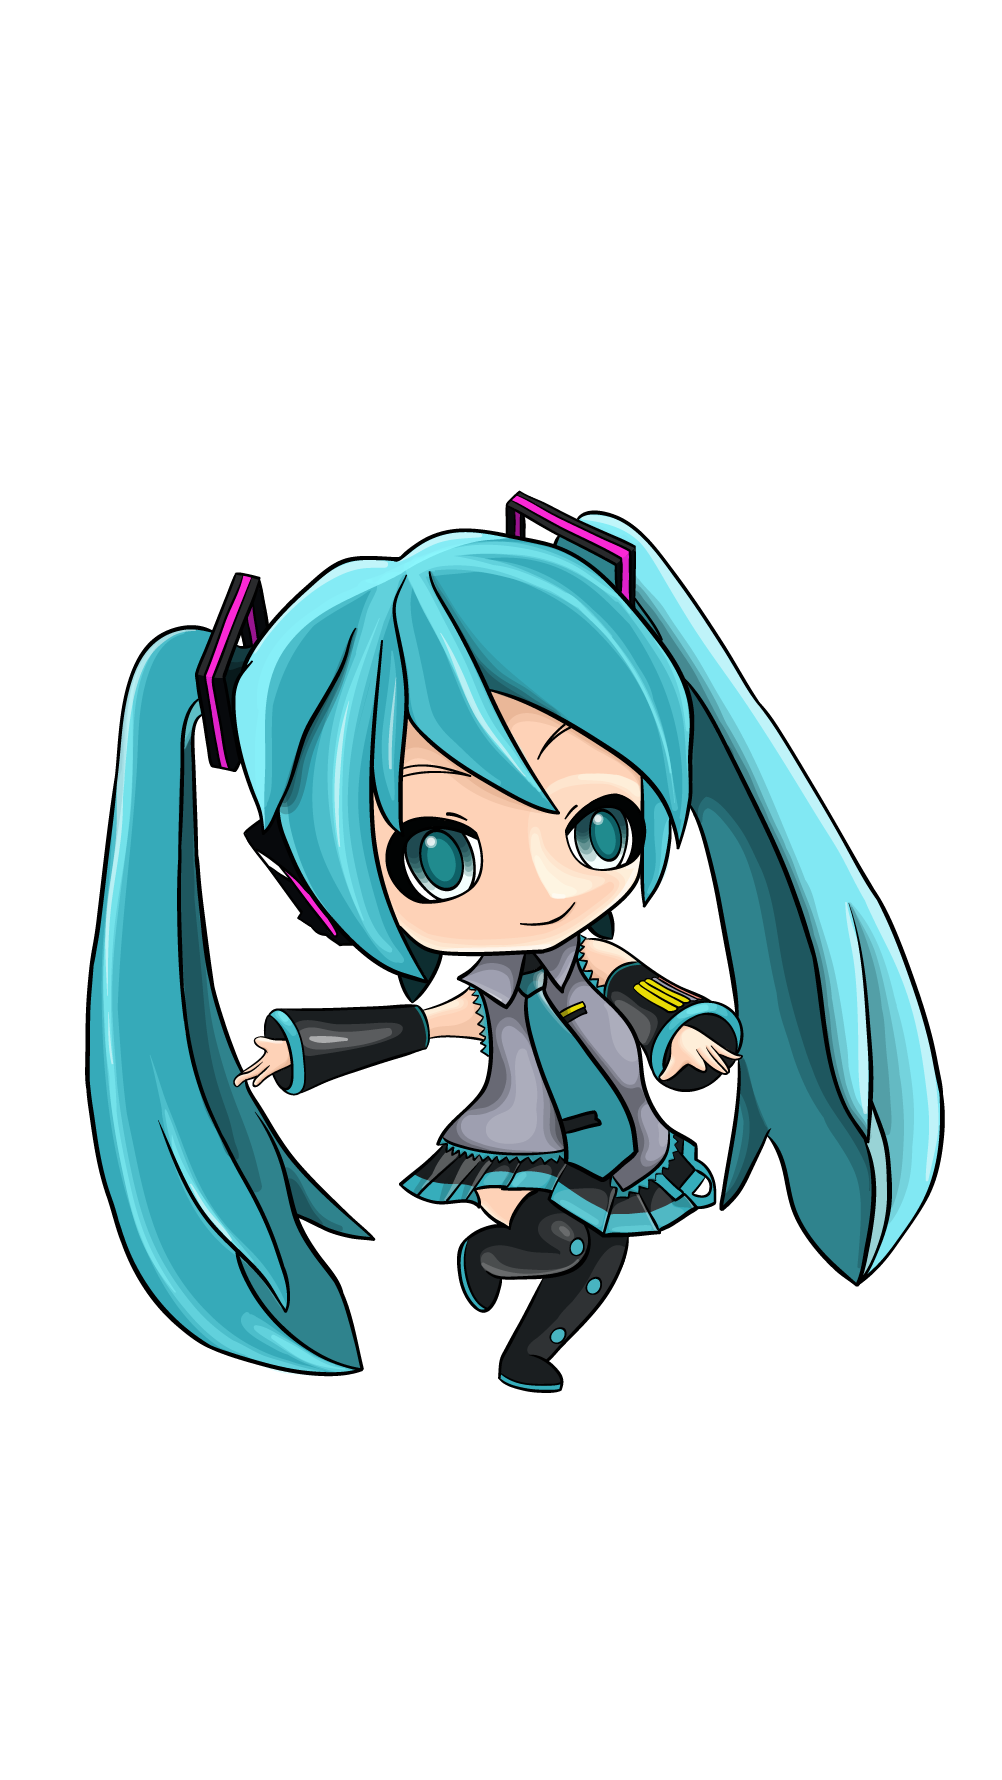 Hatsune Miku Anime A Great Step By Step Tutorial With Only Thirteen Steps So Easy And Prepared For All Beginners Htt Hatsune Miku Anime Anime Anime Character